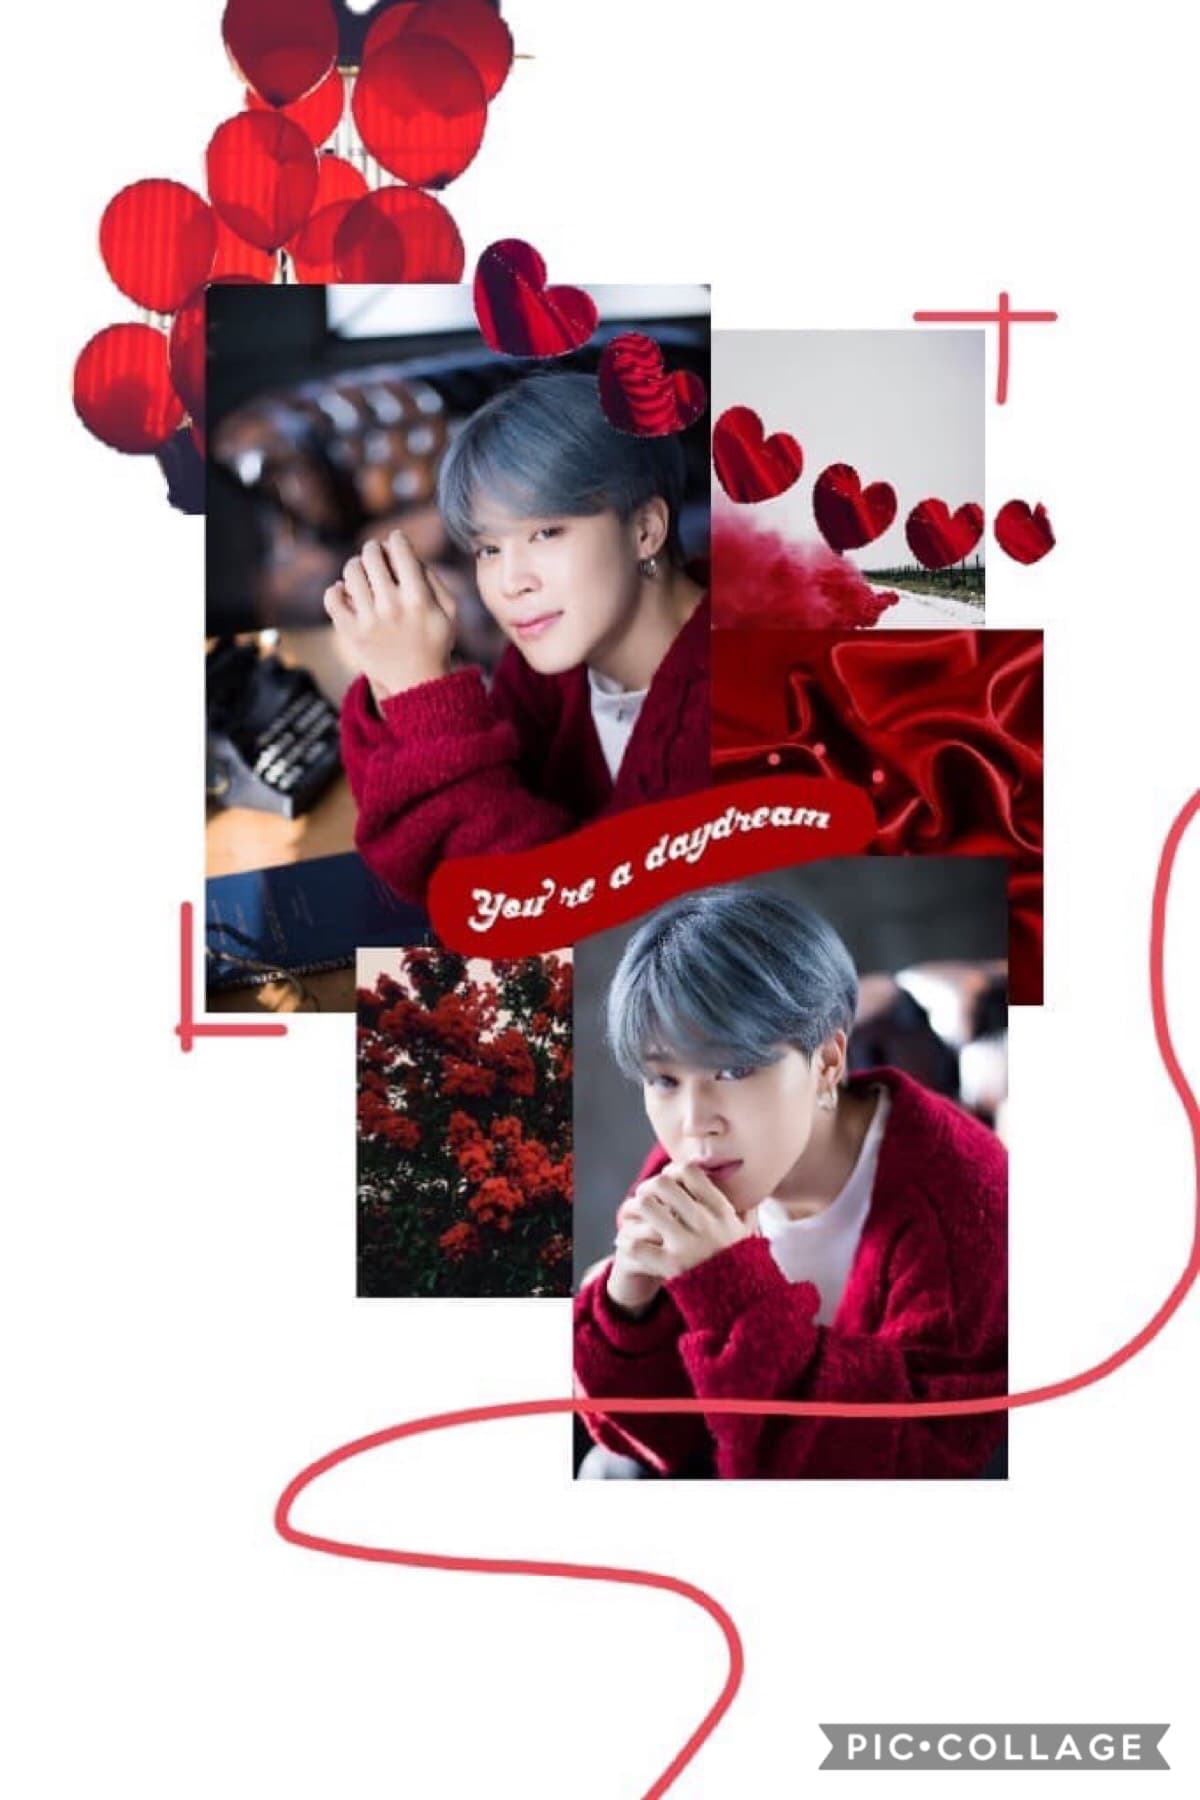 ♥️ tap ♥️  Heyyy ANOTHER Jimin collage because HE'S SO CUTE FOR CRYING OUT LOUD  This was inspired by someone but I can't remember their username or if they were even on Piccollage 😖  anyway qotd: favourite season? aotd: winter because I like the cold 😅⛄️